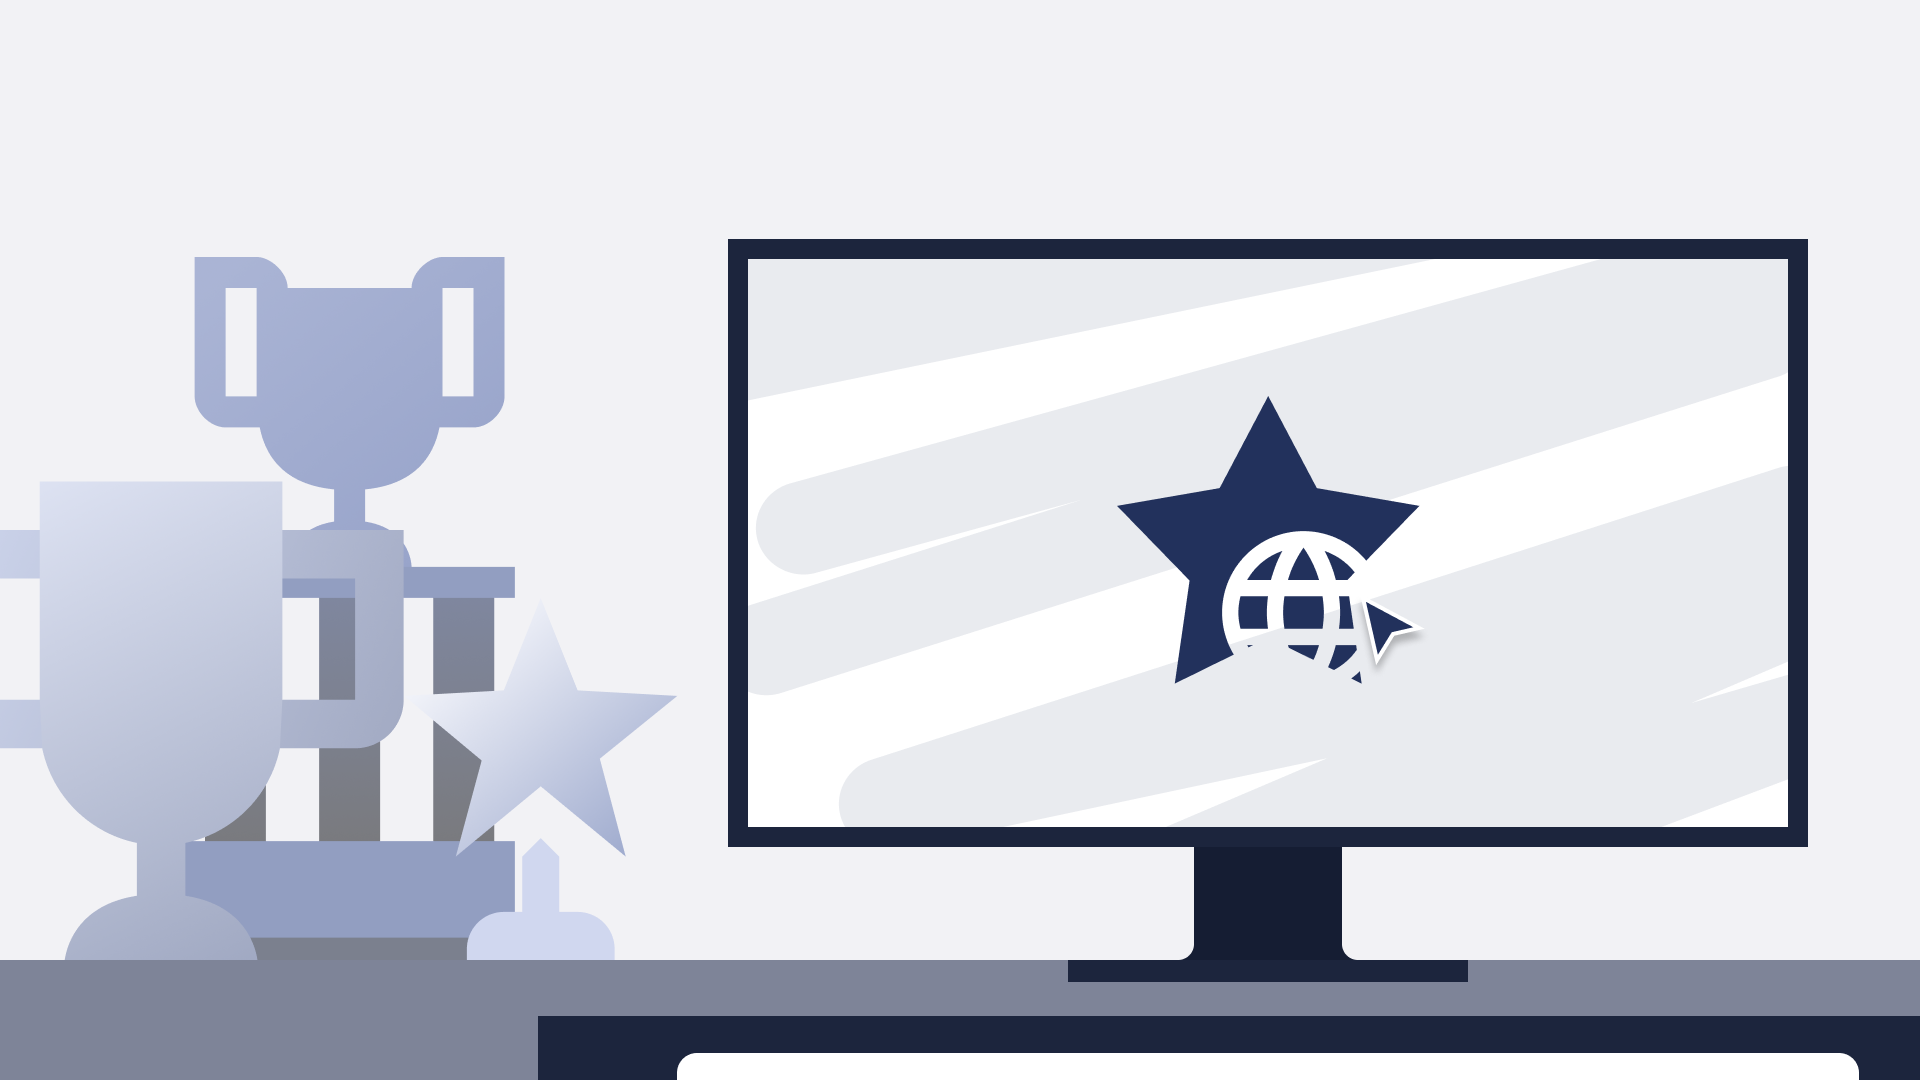 Culture Stars: A New Way to Publicly Recognize Your Star Employees